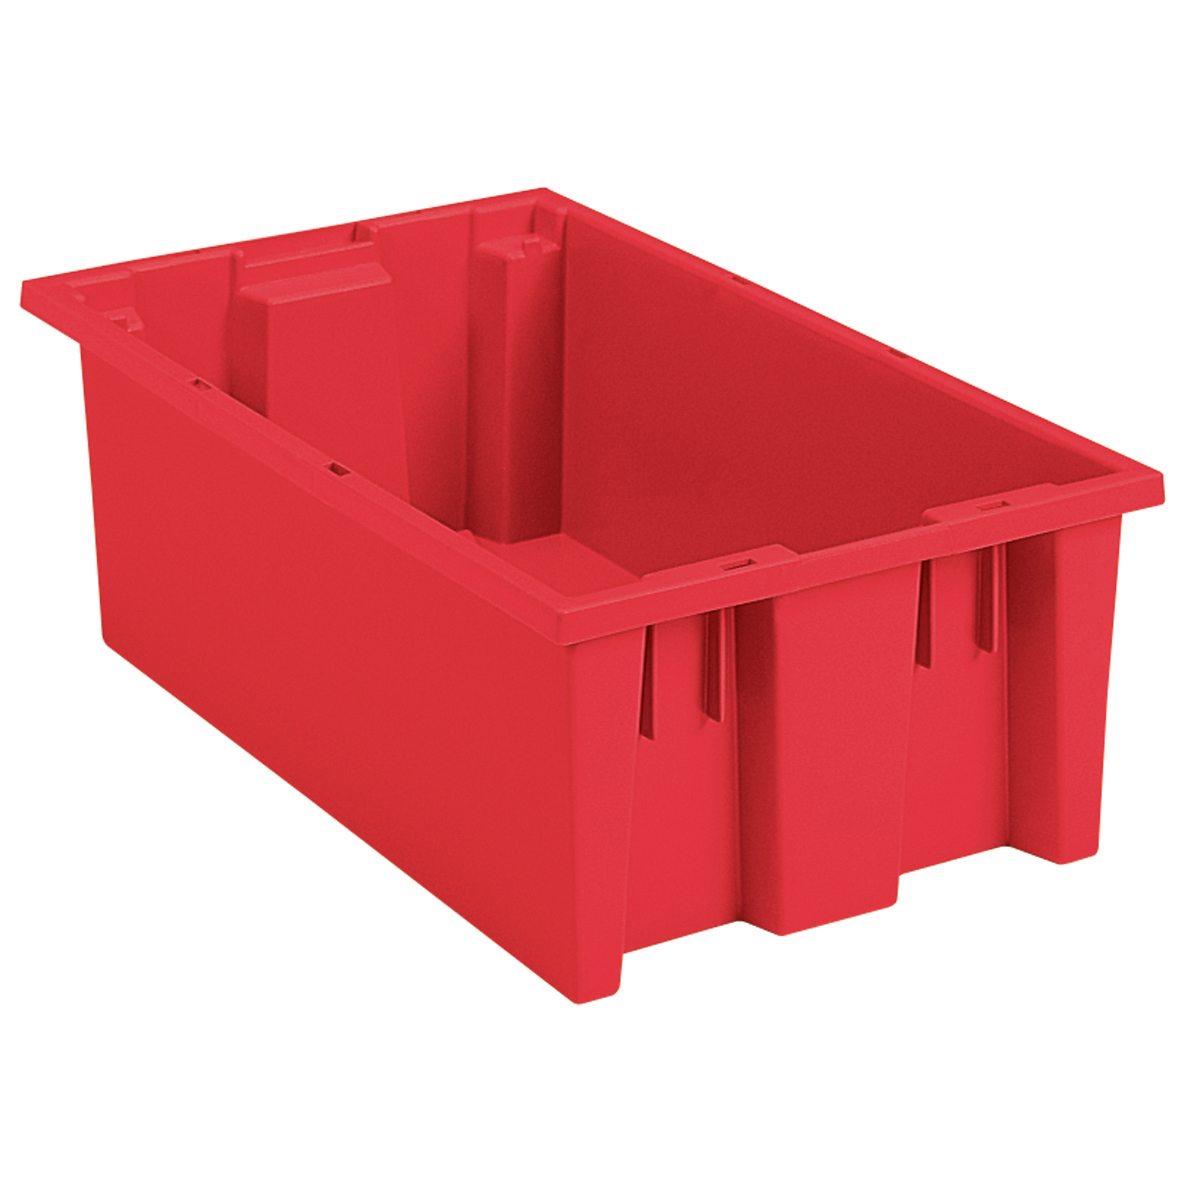 Nest & Stack Tote 18 x 11 x 6, Red (35180RED).  This item sold in carton quantities of 6.